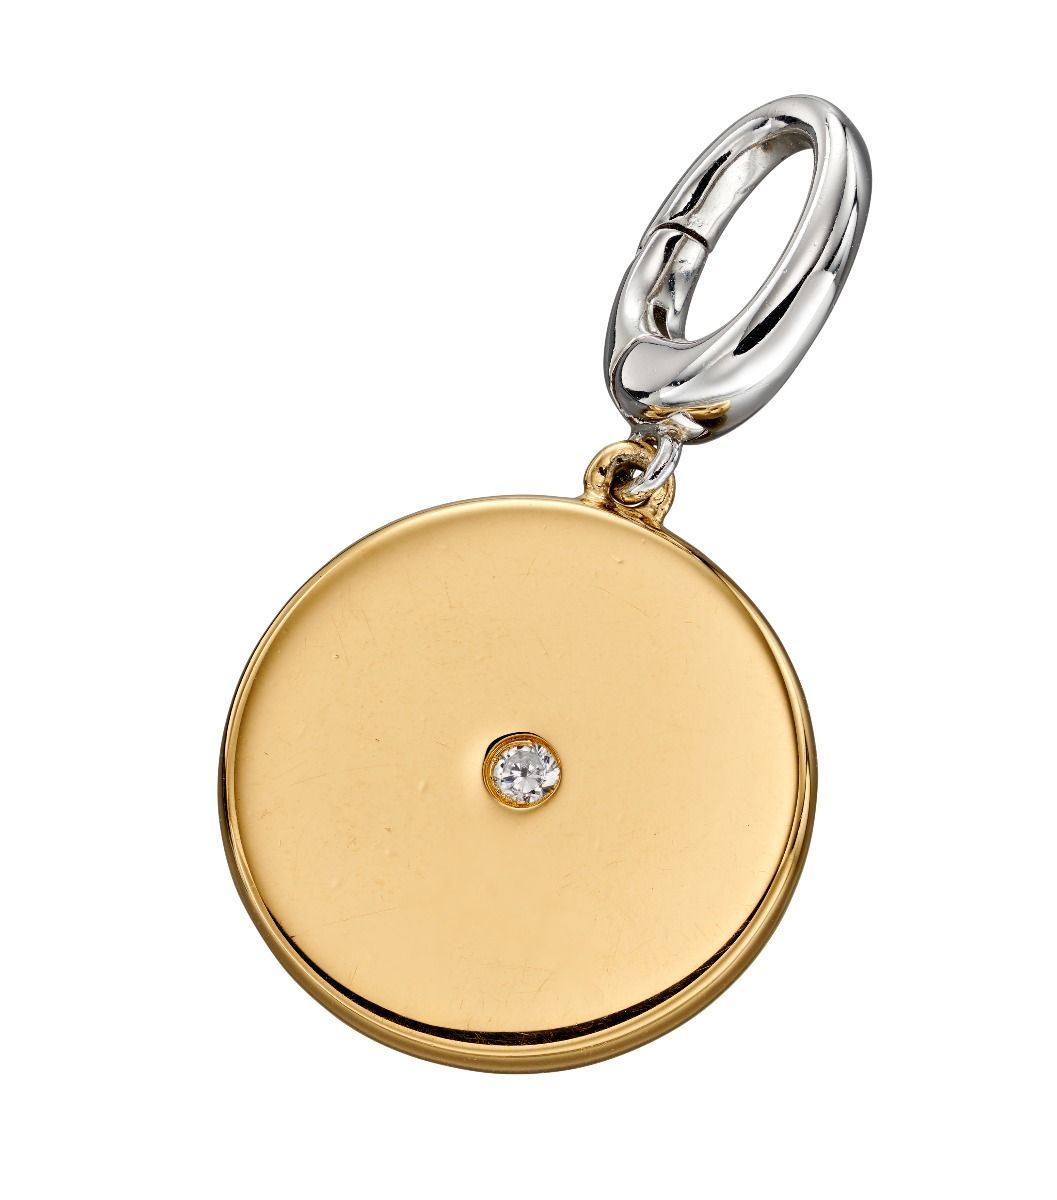 Fiorelli Silver Womens 925 Sterling Silver Gold Plated Cubic Zirconia Round Disc Spring Catch Charm